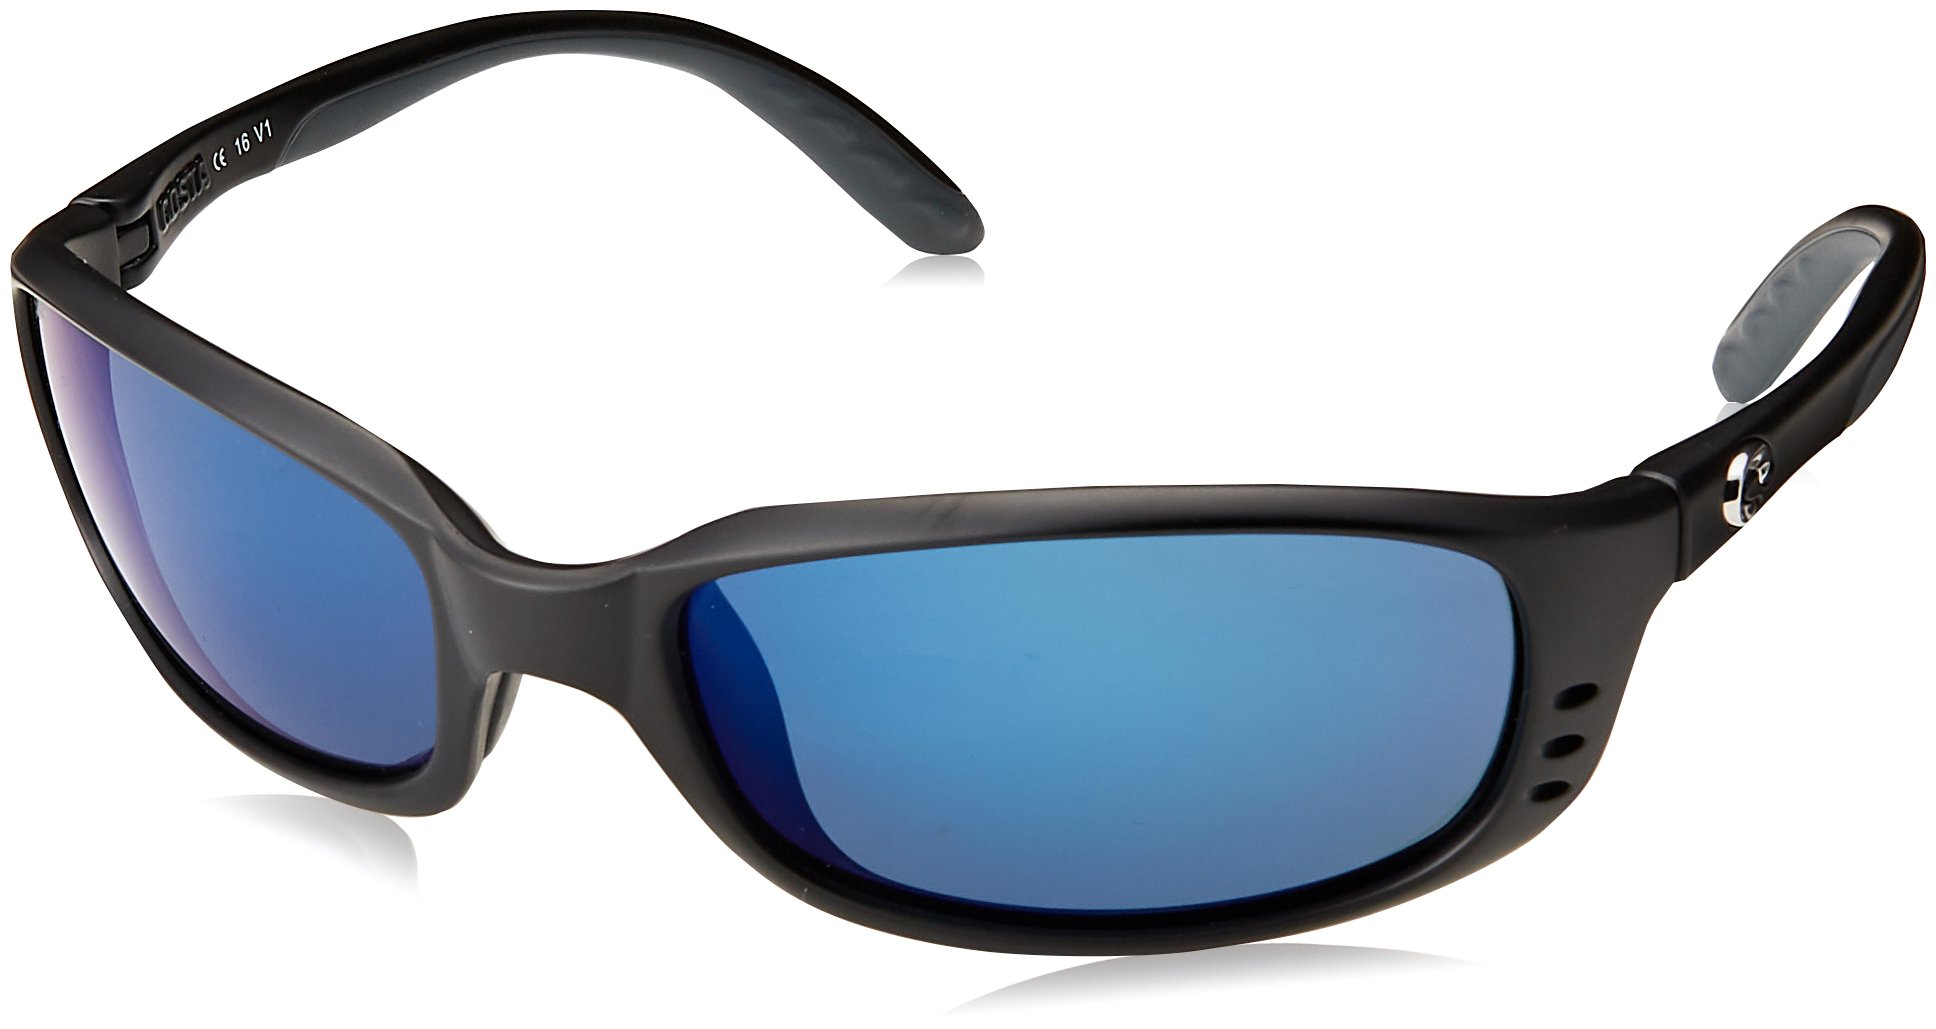 Costa Del Mar Brine Sunglasses BR 11 OBMP Matte Black/Blue Mirror 580Plastic by Costa Del Mar